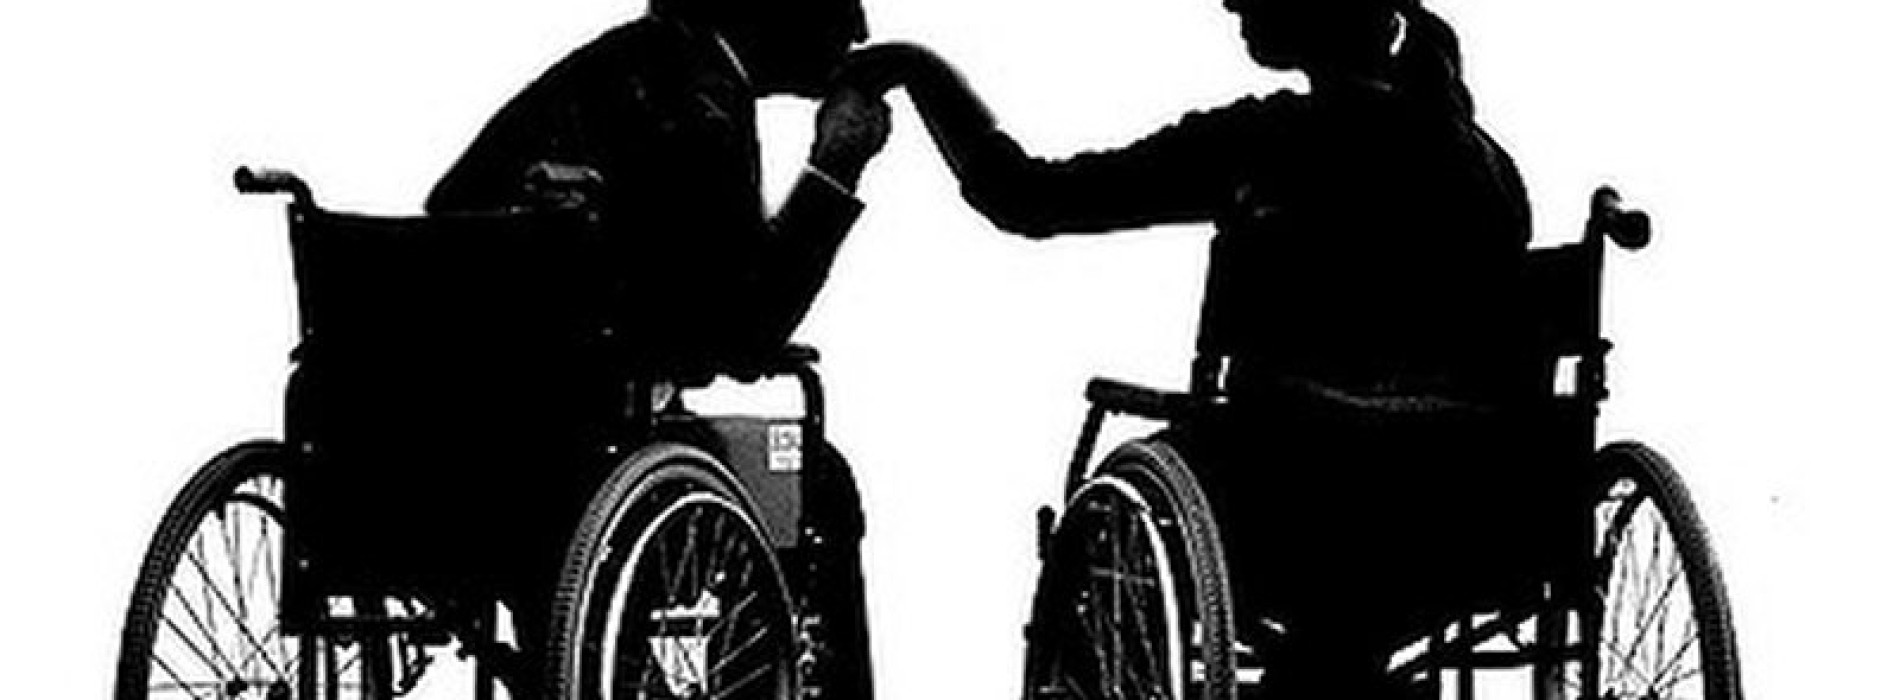 Disability and relationships: how to use your assets